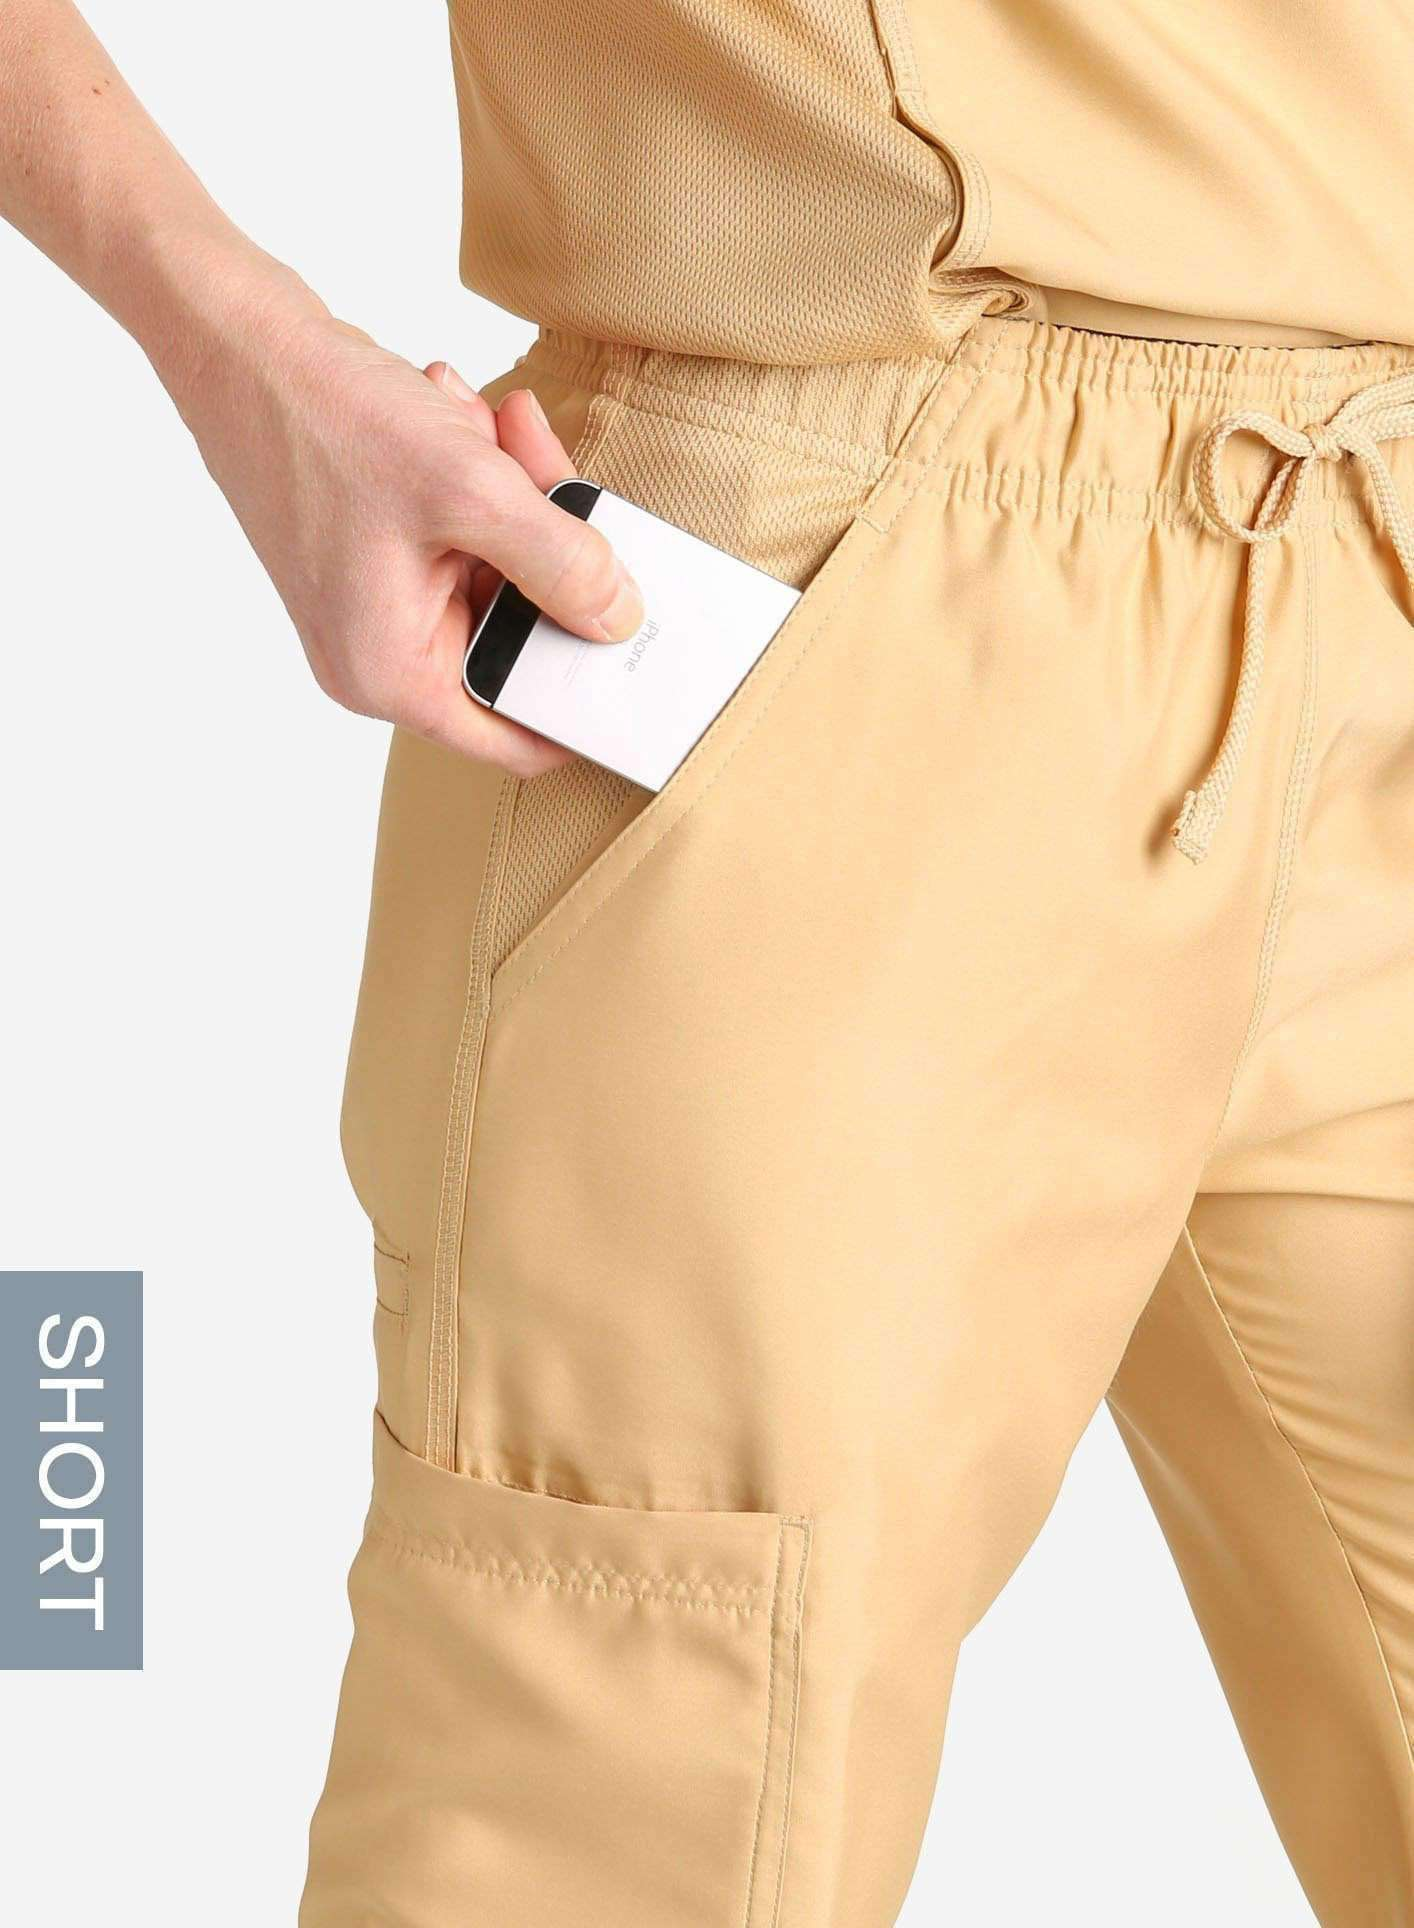 womens short cargo pocket straight leg scrub pants khaki Elements detail